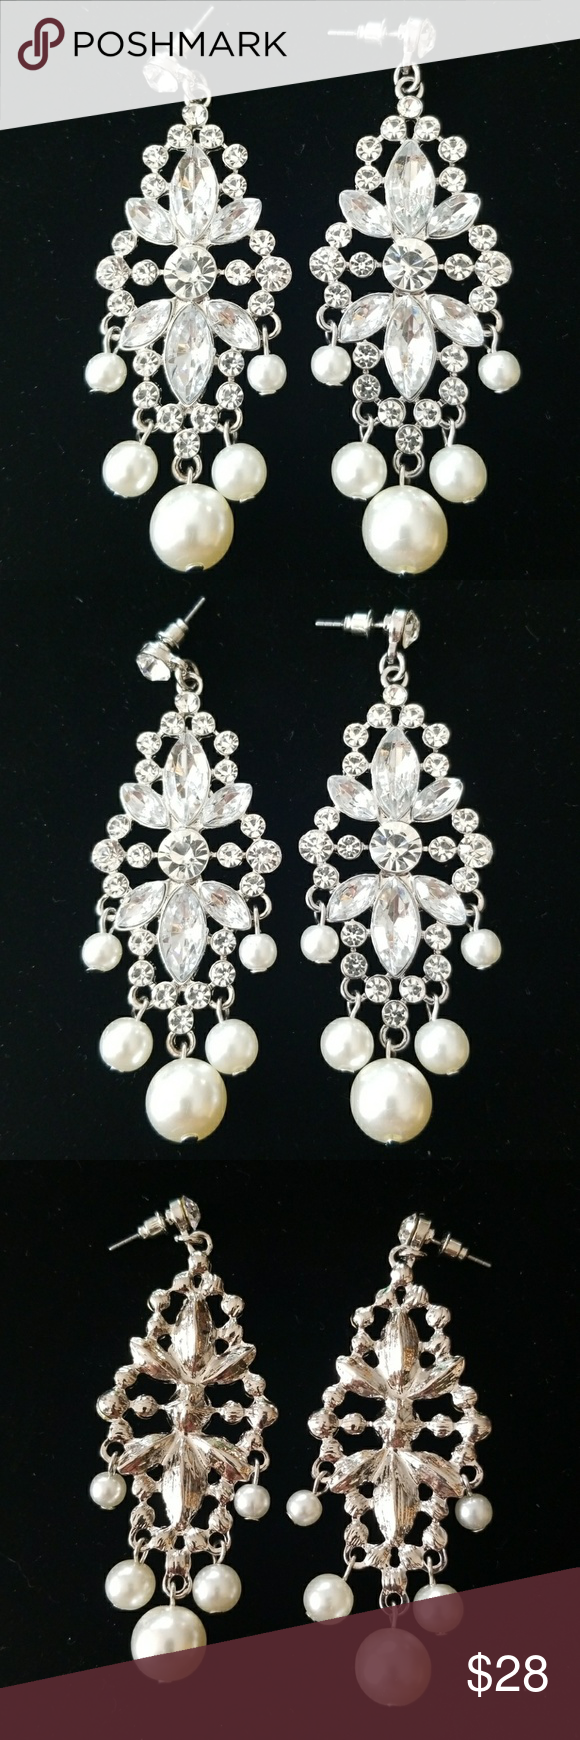 Vintage earrings rhinestone pearl chandelier pearl chandelier vintage earrings rhinestone pearl chandelier arubaitofo Image collections